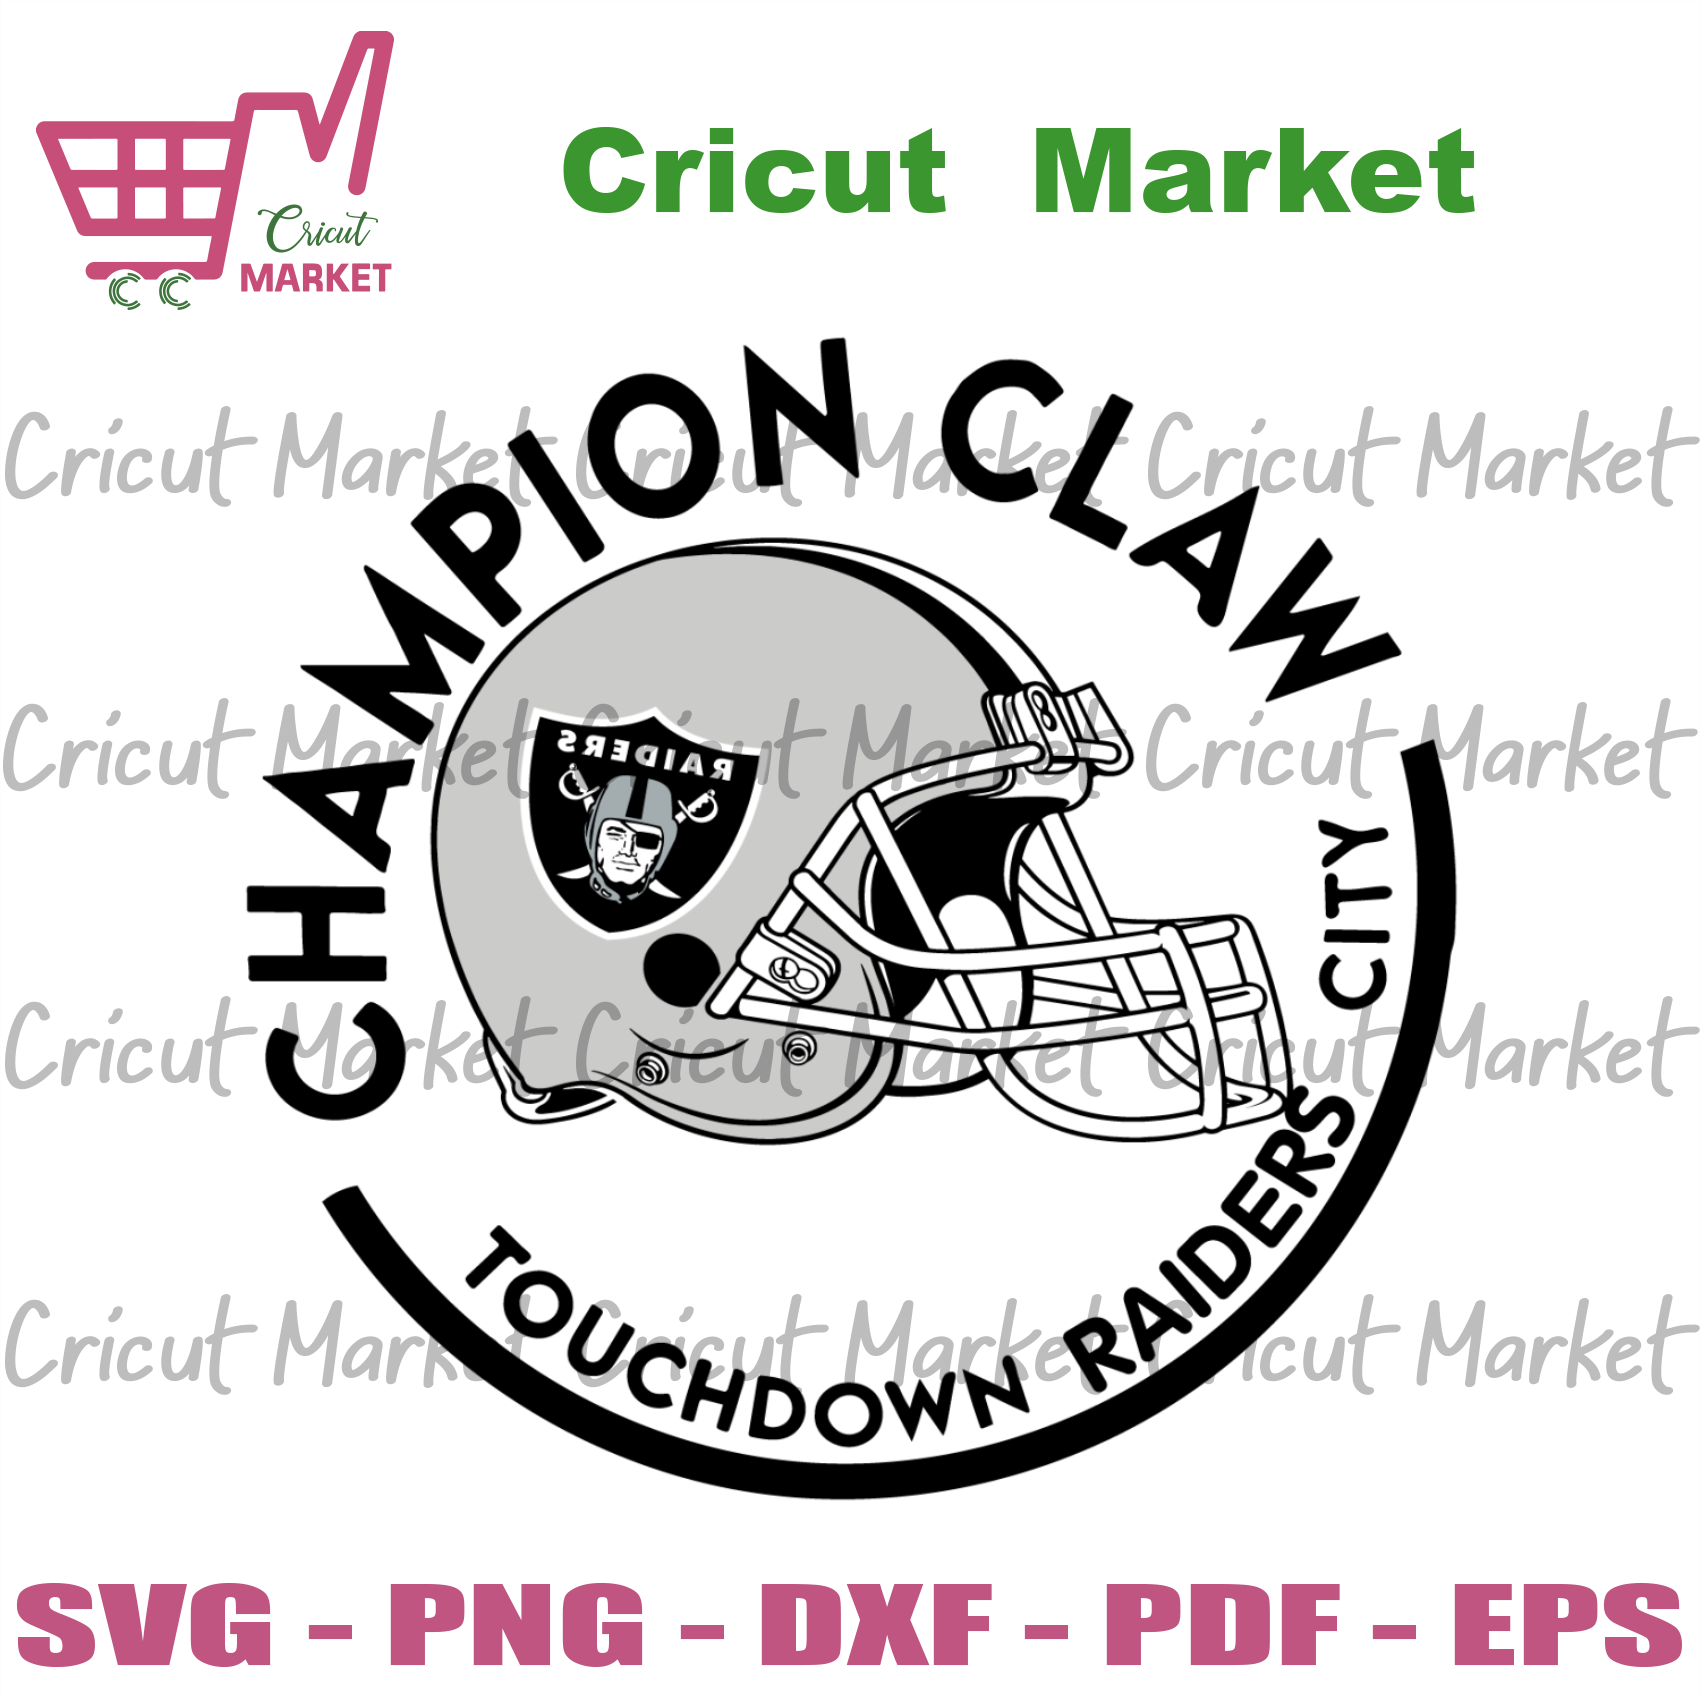 Champion Claw Touchdown Raiders City Svg, Sport Svg, Oakland Raiders Svg, Oakland Raiders Football Team Svg,Oakland Raiders Helmet Svg, Oakland Raiders Logo Svg, Oakland Raiders Fans, Champio